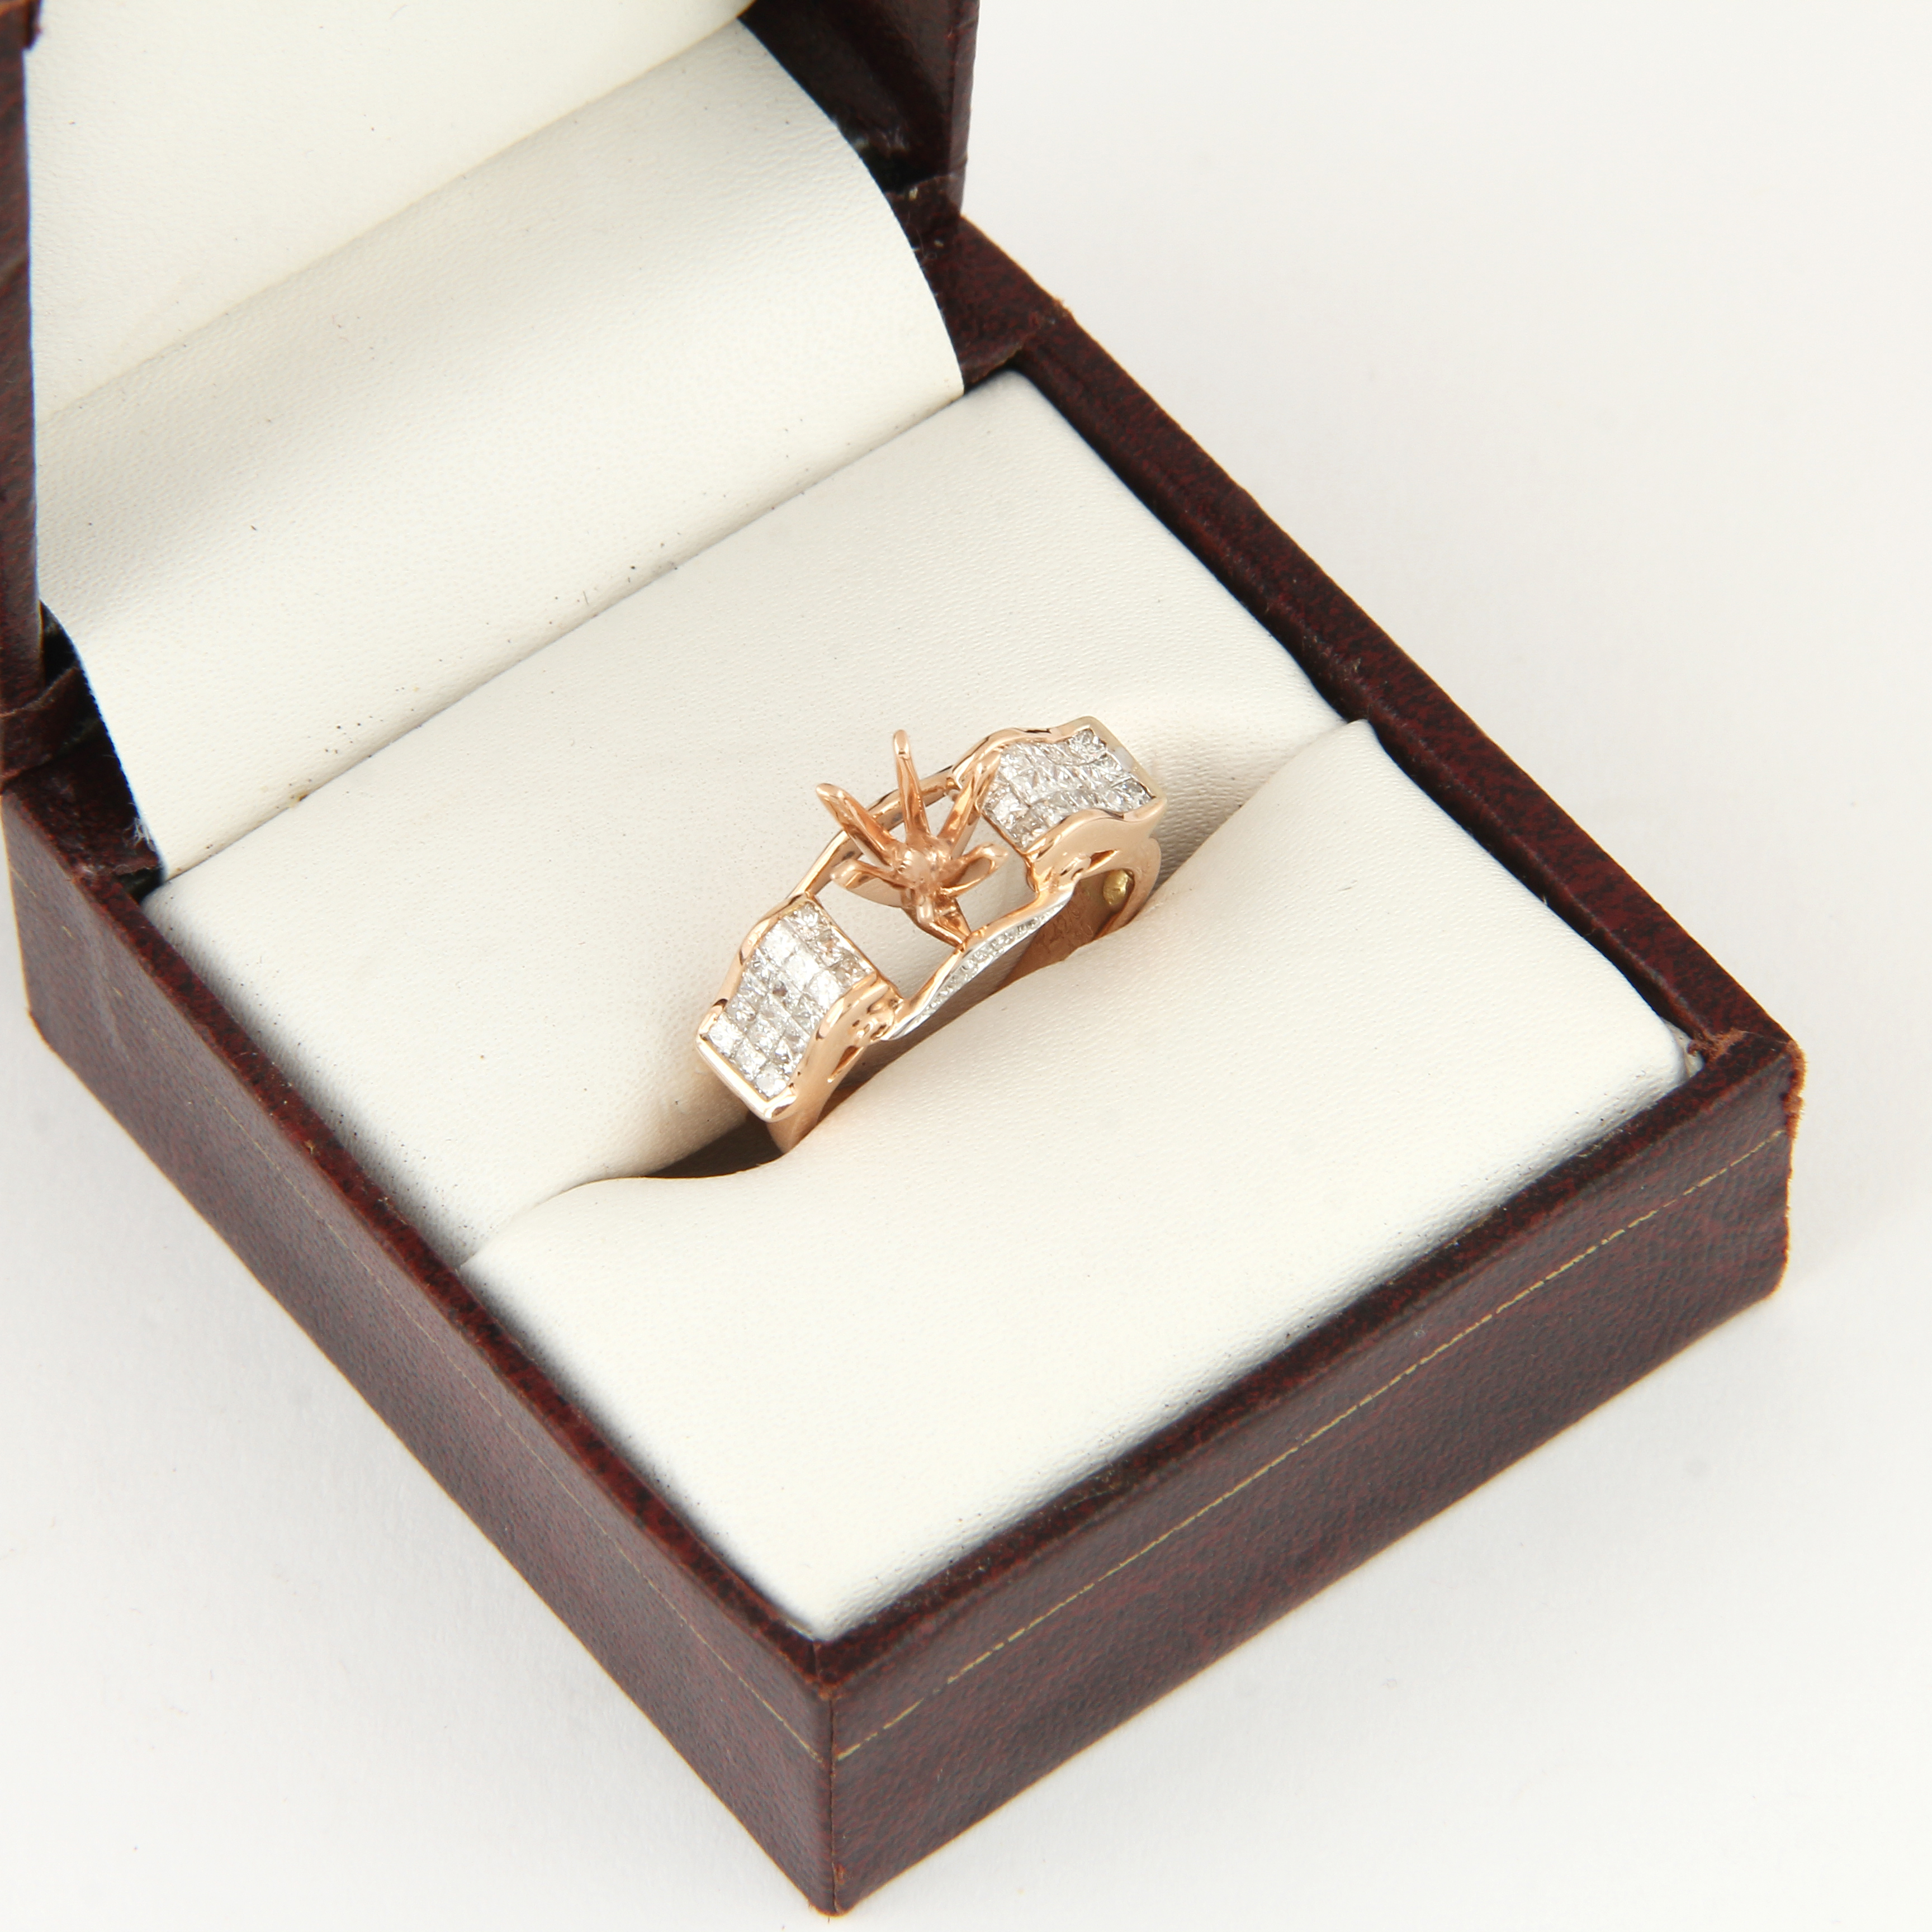 Lot 47 - 14 K / 585 Rose Gold Diamond Ring - Center stone unmounted